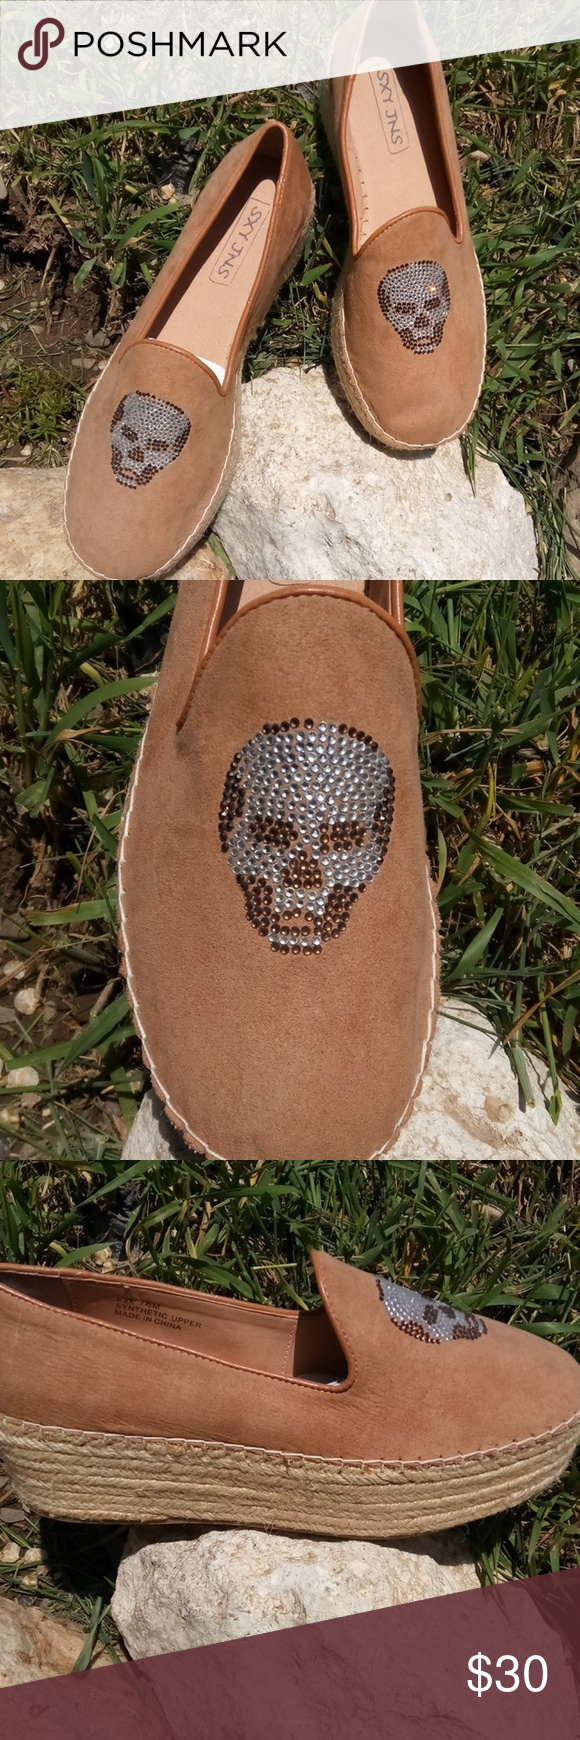 SXY JNS Shoes Really cute tan skeleton shoes embellished with clear and brown faux crystal! There is a small spot on back of heal. (Pictured, not sure how it got there.) Heel: 1 3/4 Please look at all pictures before purchasing! Reasonable offers accepted! SXY JNS Shoes Wedges #shoewedges